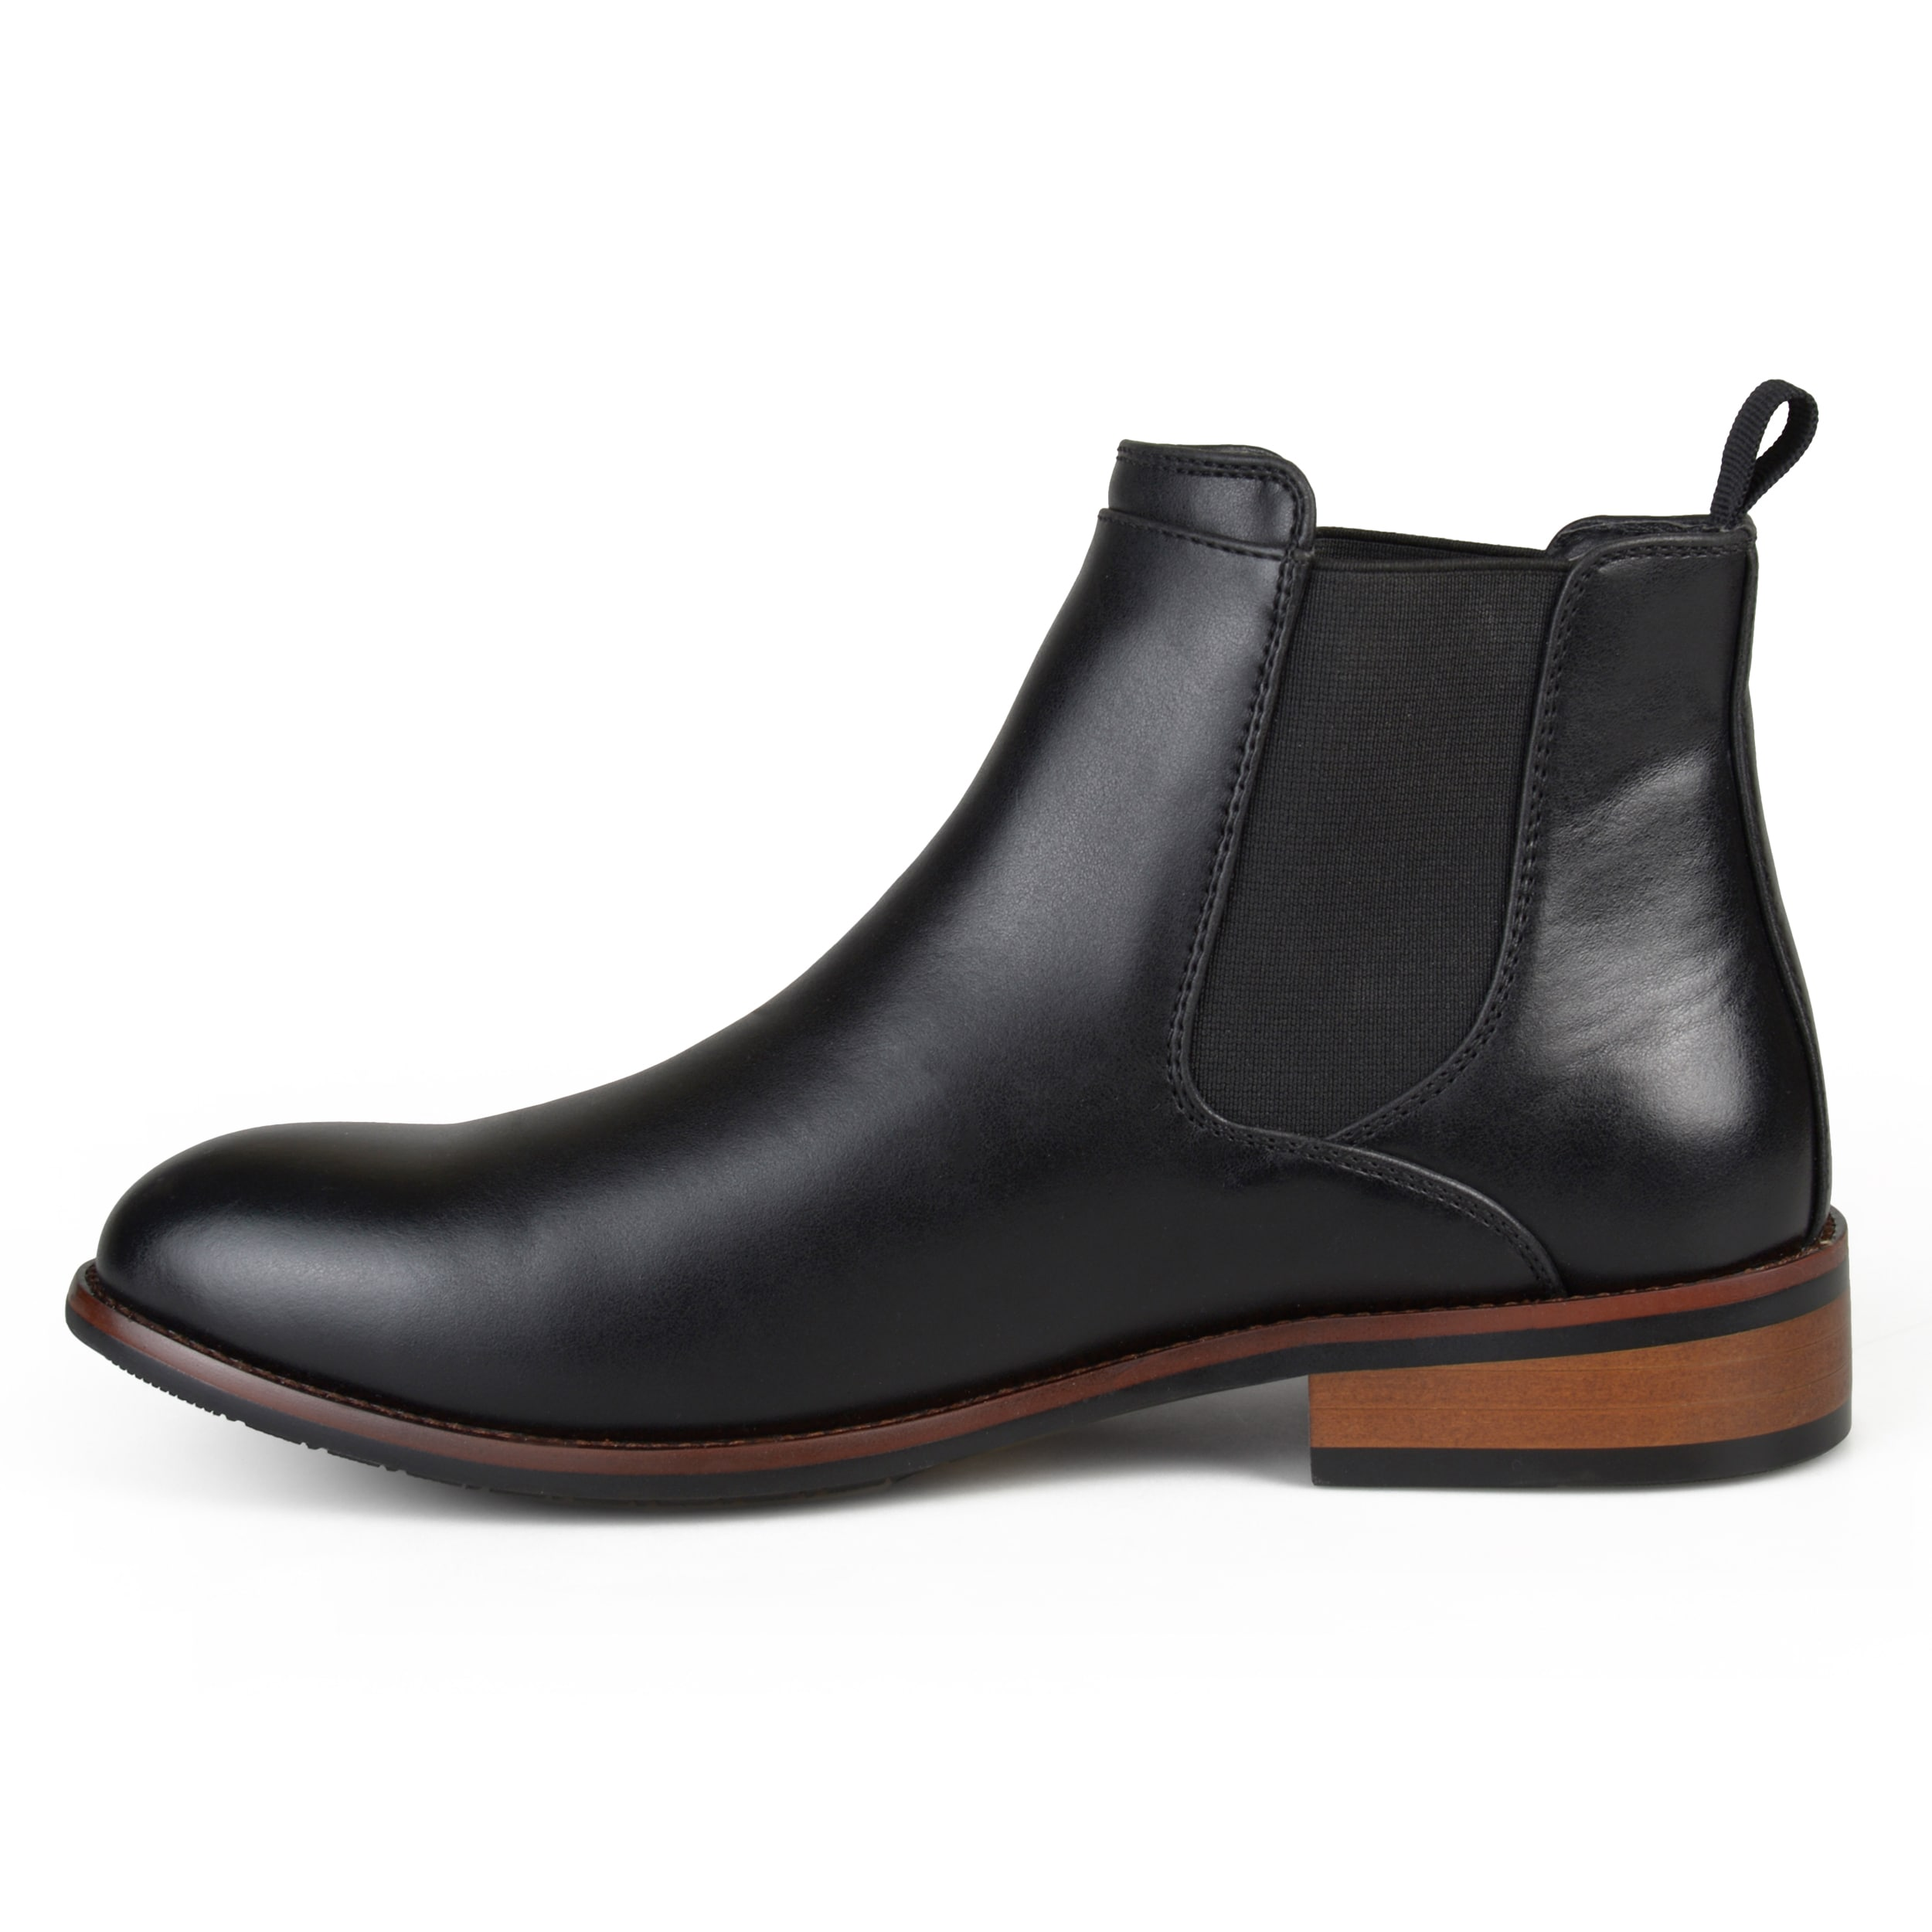 Men's 'Landon' Round Toe High Top Chelsea Dress Boots - On Sale - Free  Shipping Today - Overstock.com - 12706210